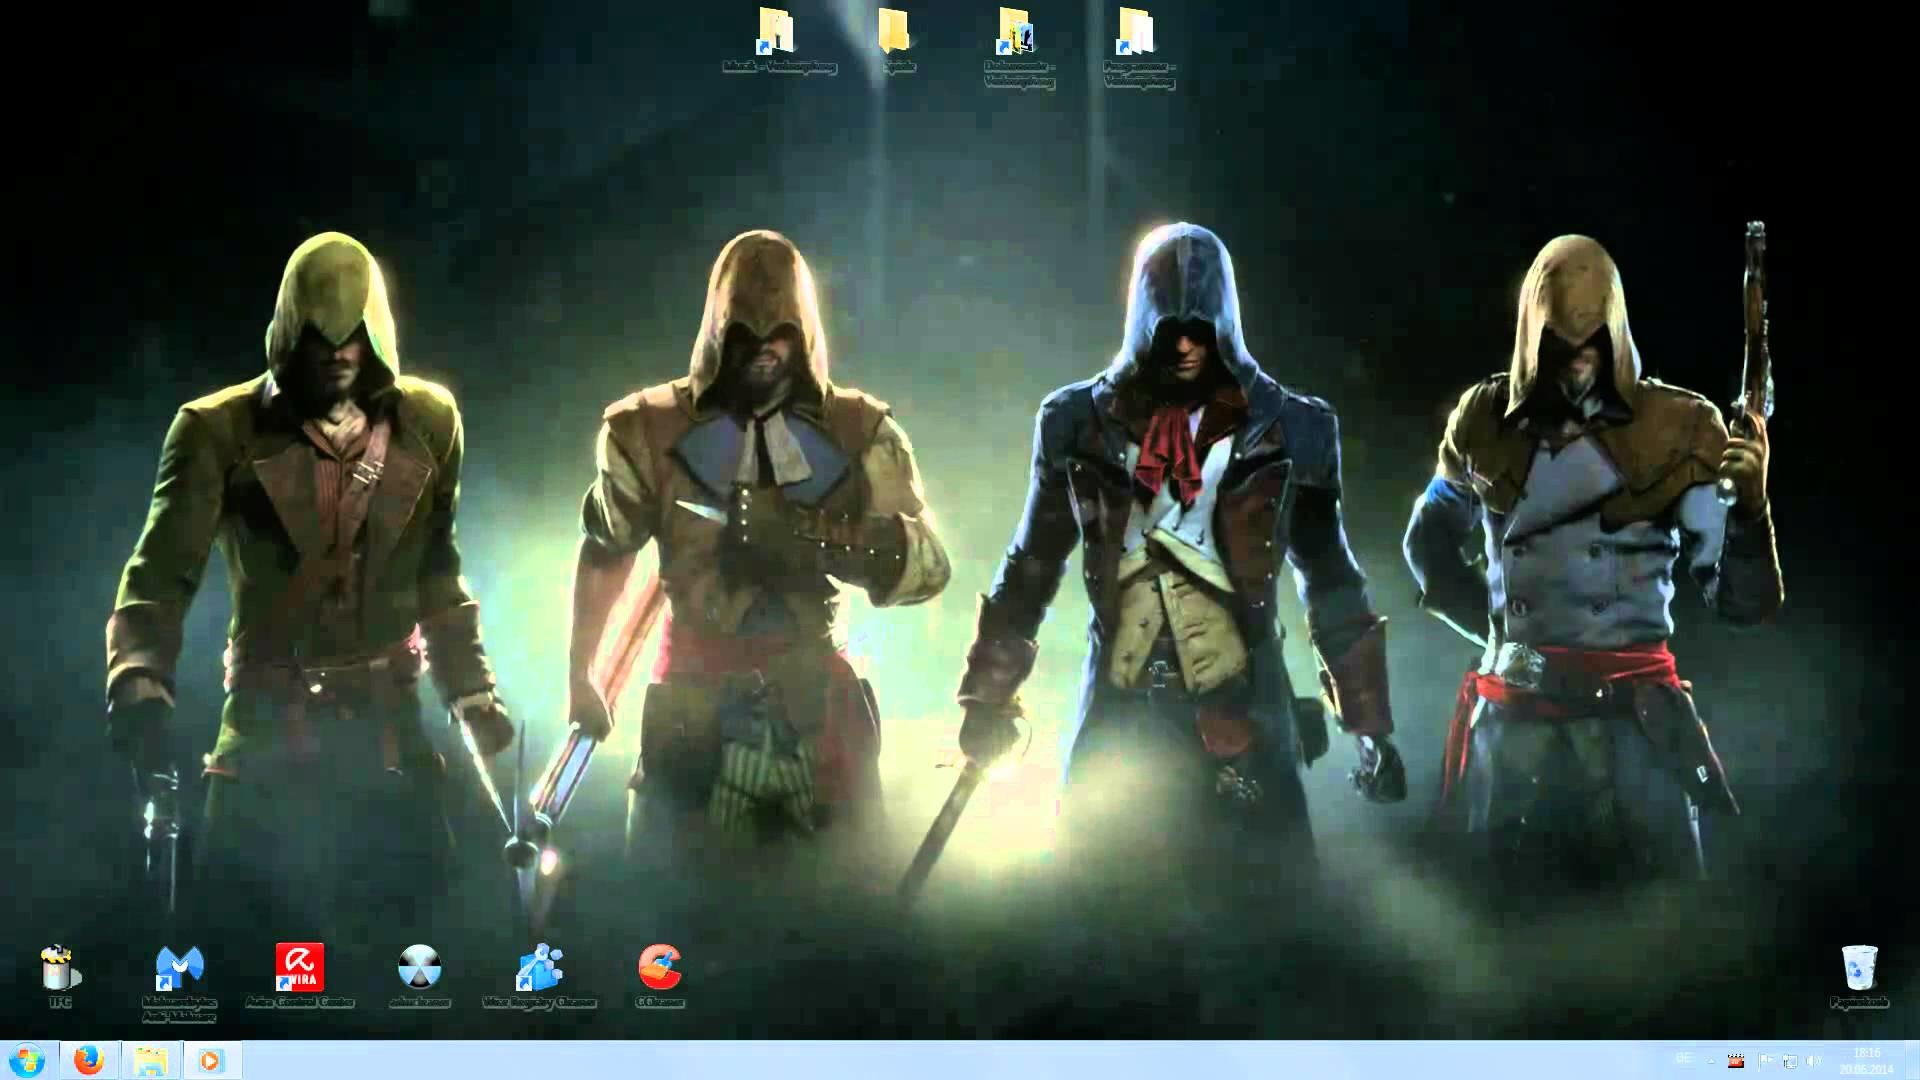 1920x1080 Assassins Creed Unity Animated Desktop Wallpaper Background Full HD   Download - YouTube